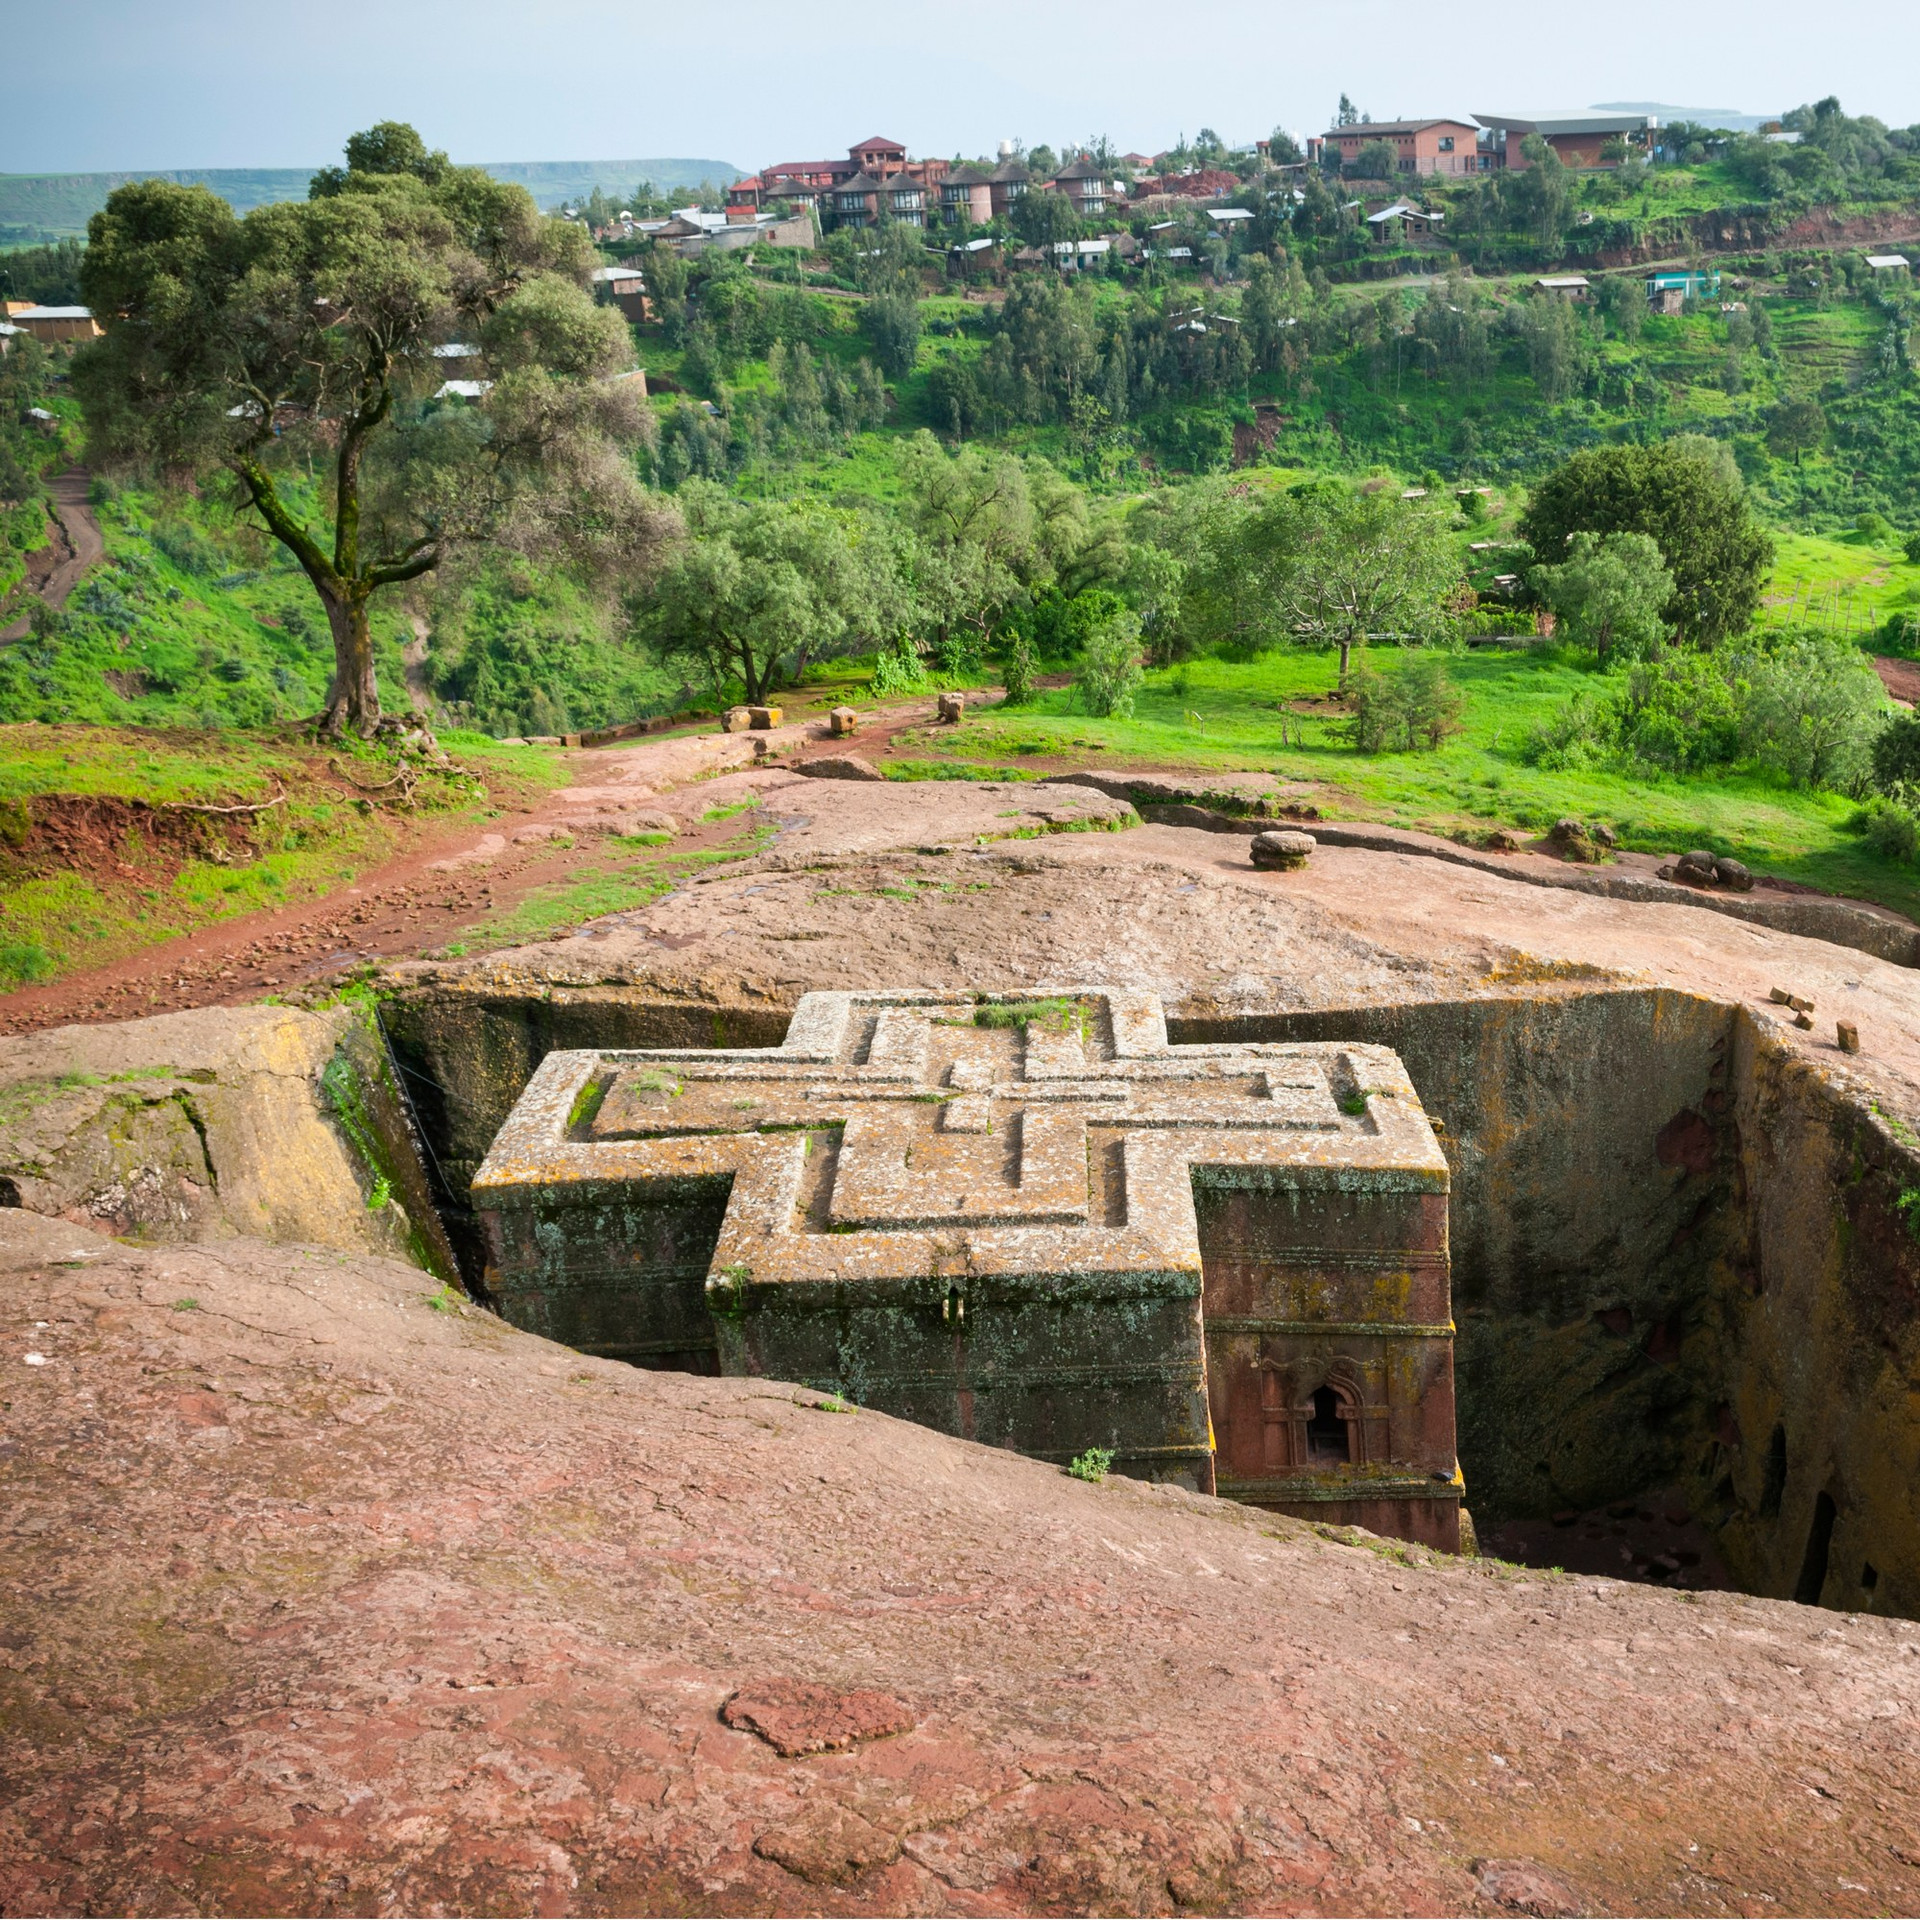 00-promo-image-lalibela-ethiopia-is-the-